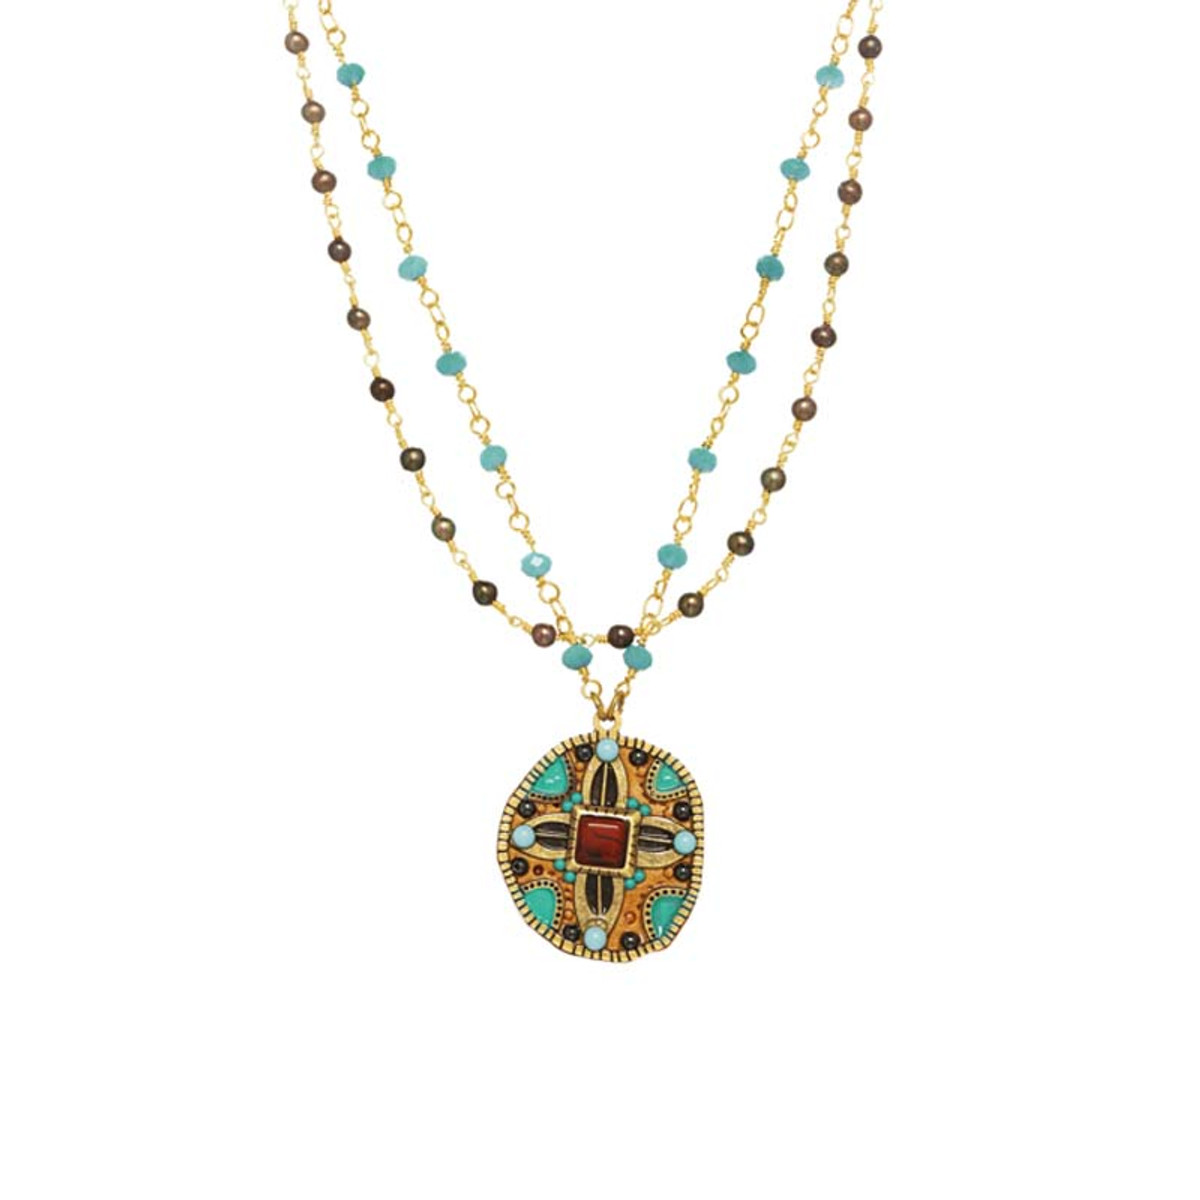 Michal Golan Jewelry Southwest Gold Necklace